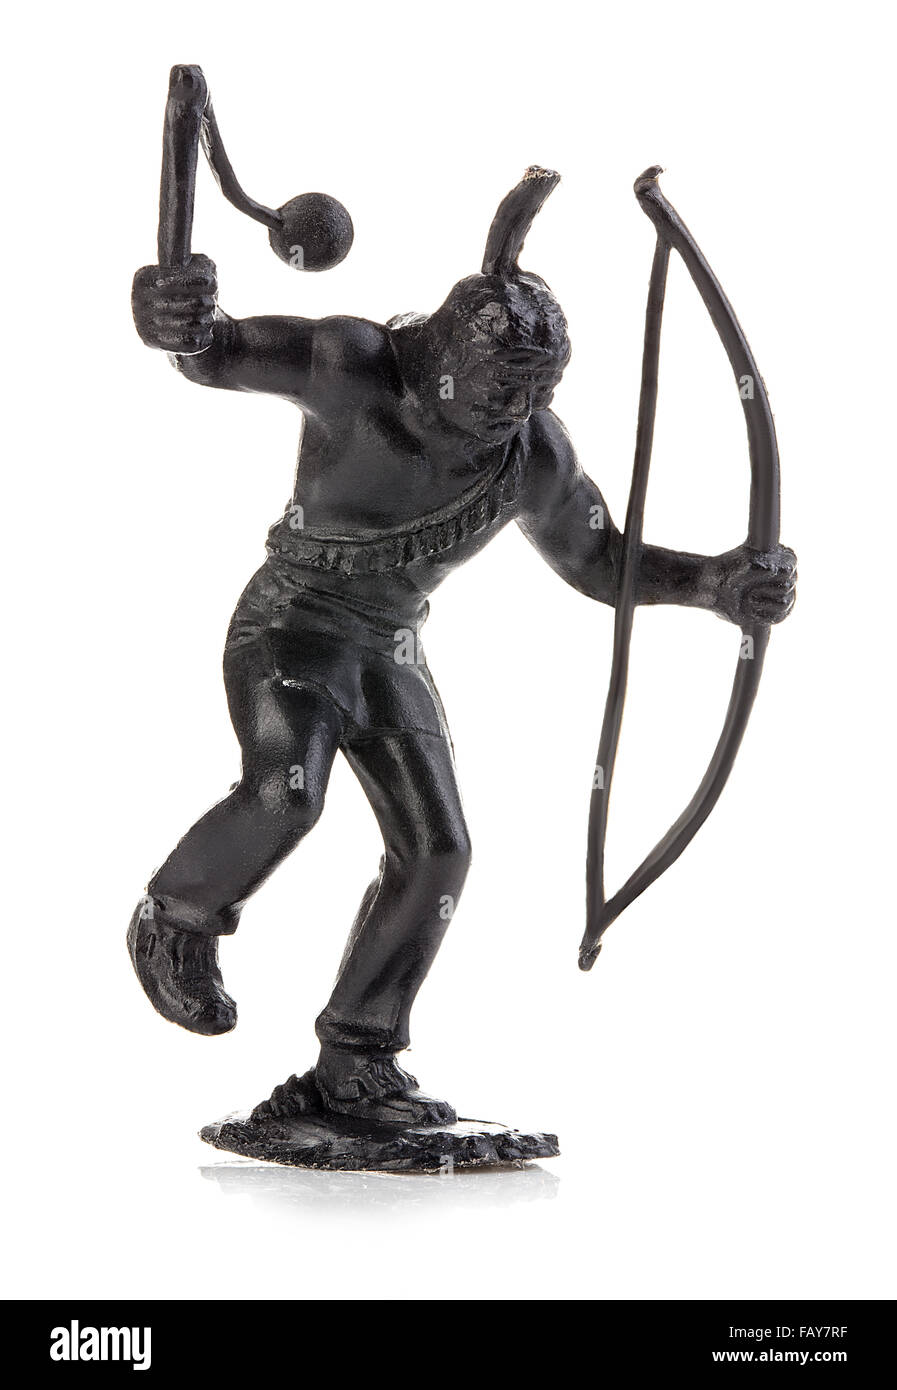 North American indian with mace and bow close-up isolated on white . Miniature figurine of a children's toy. - Stock Image